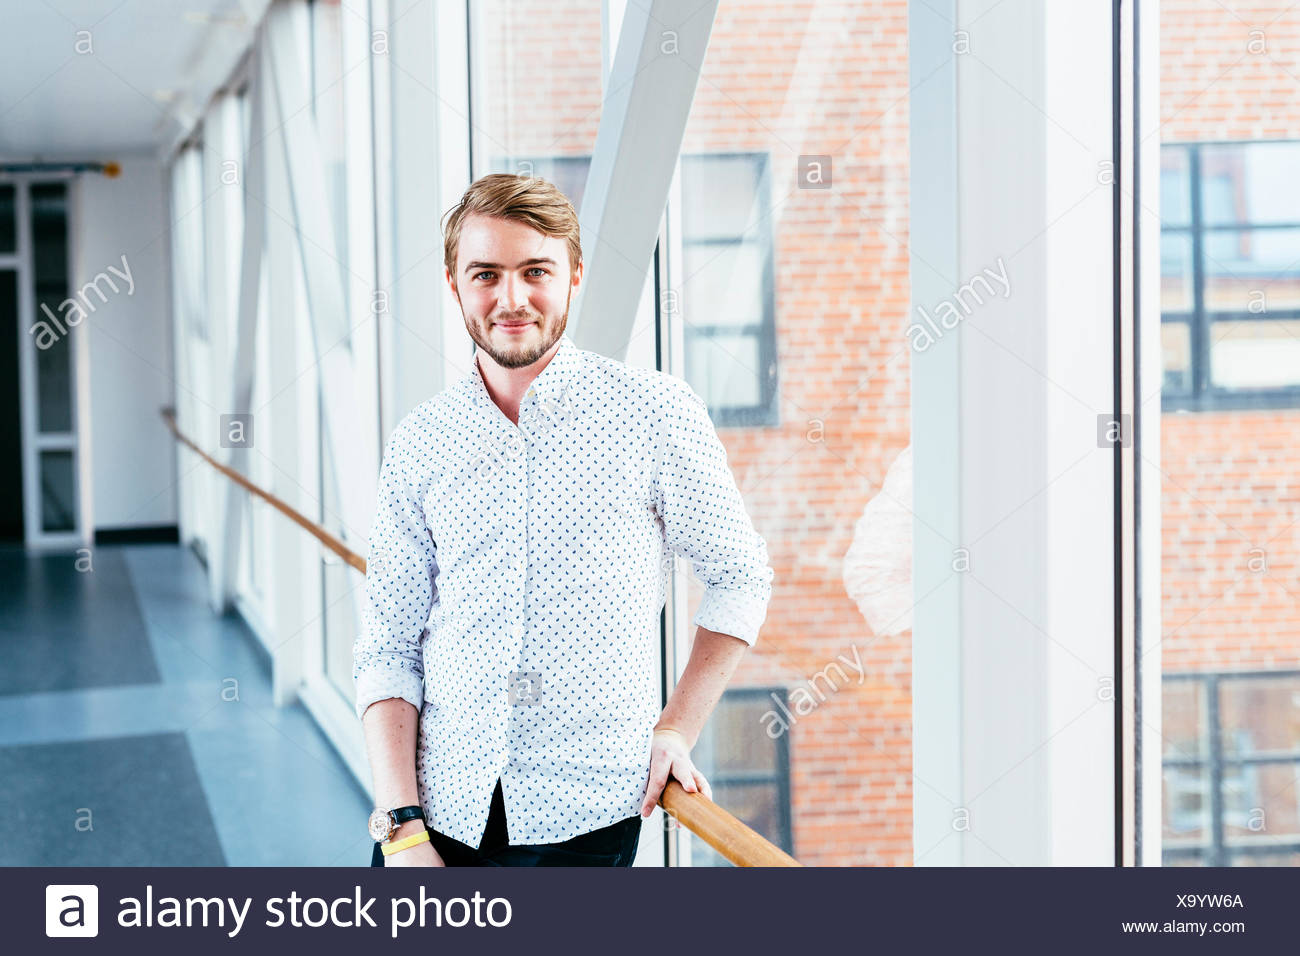 Portrait of confident media student standing at passage in university - Stock Image